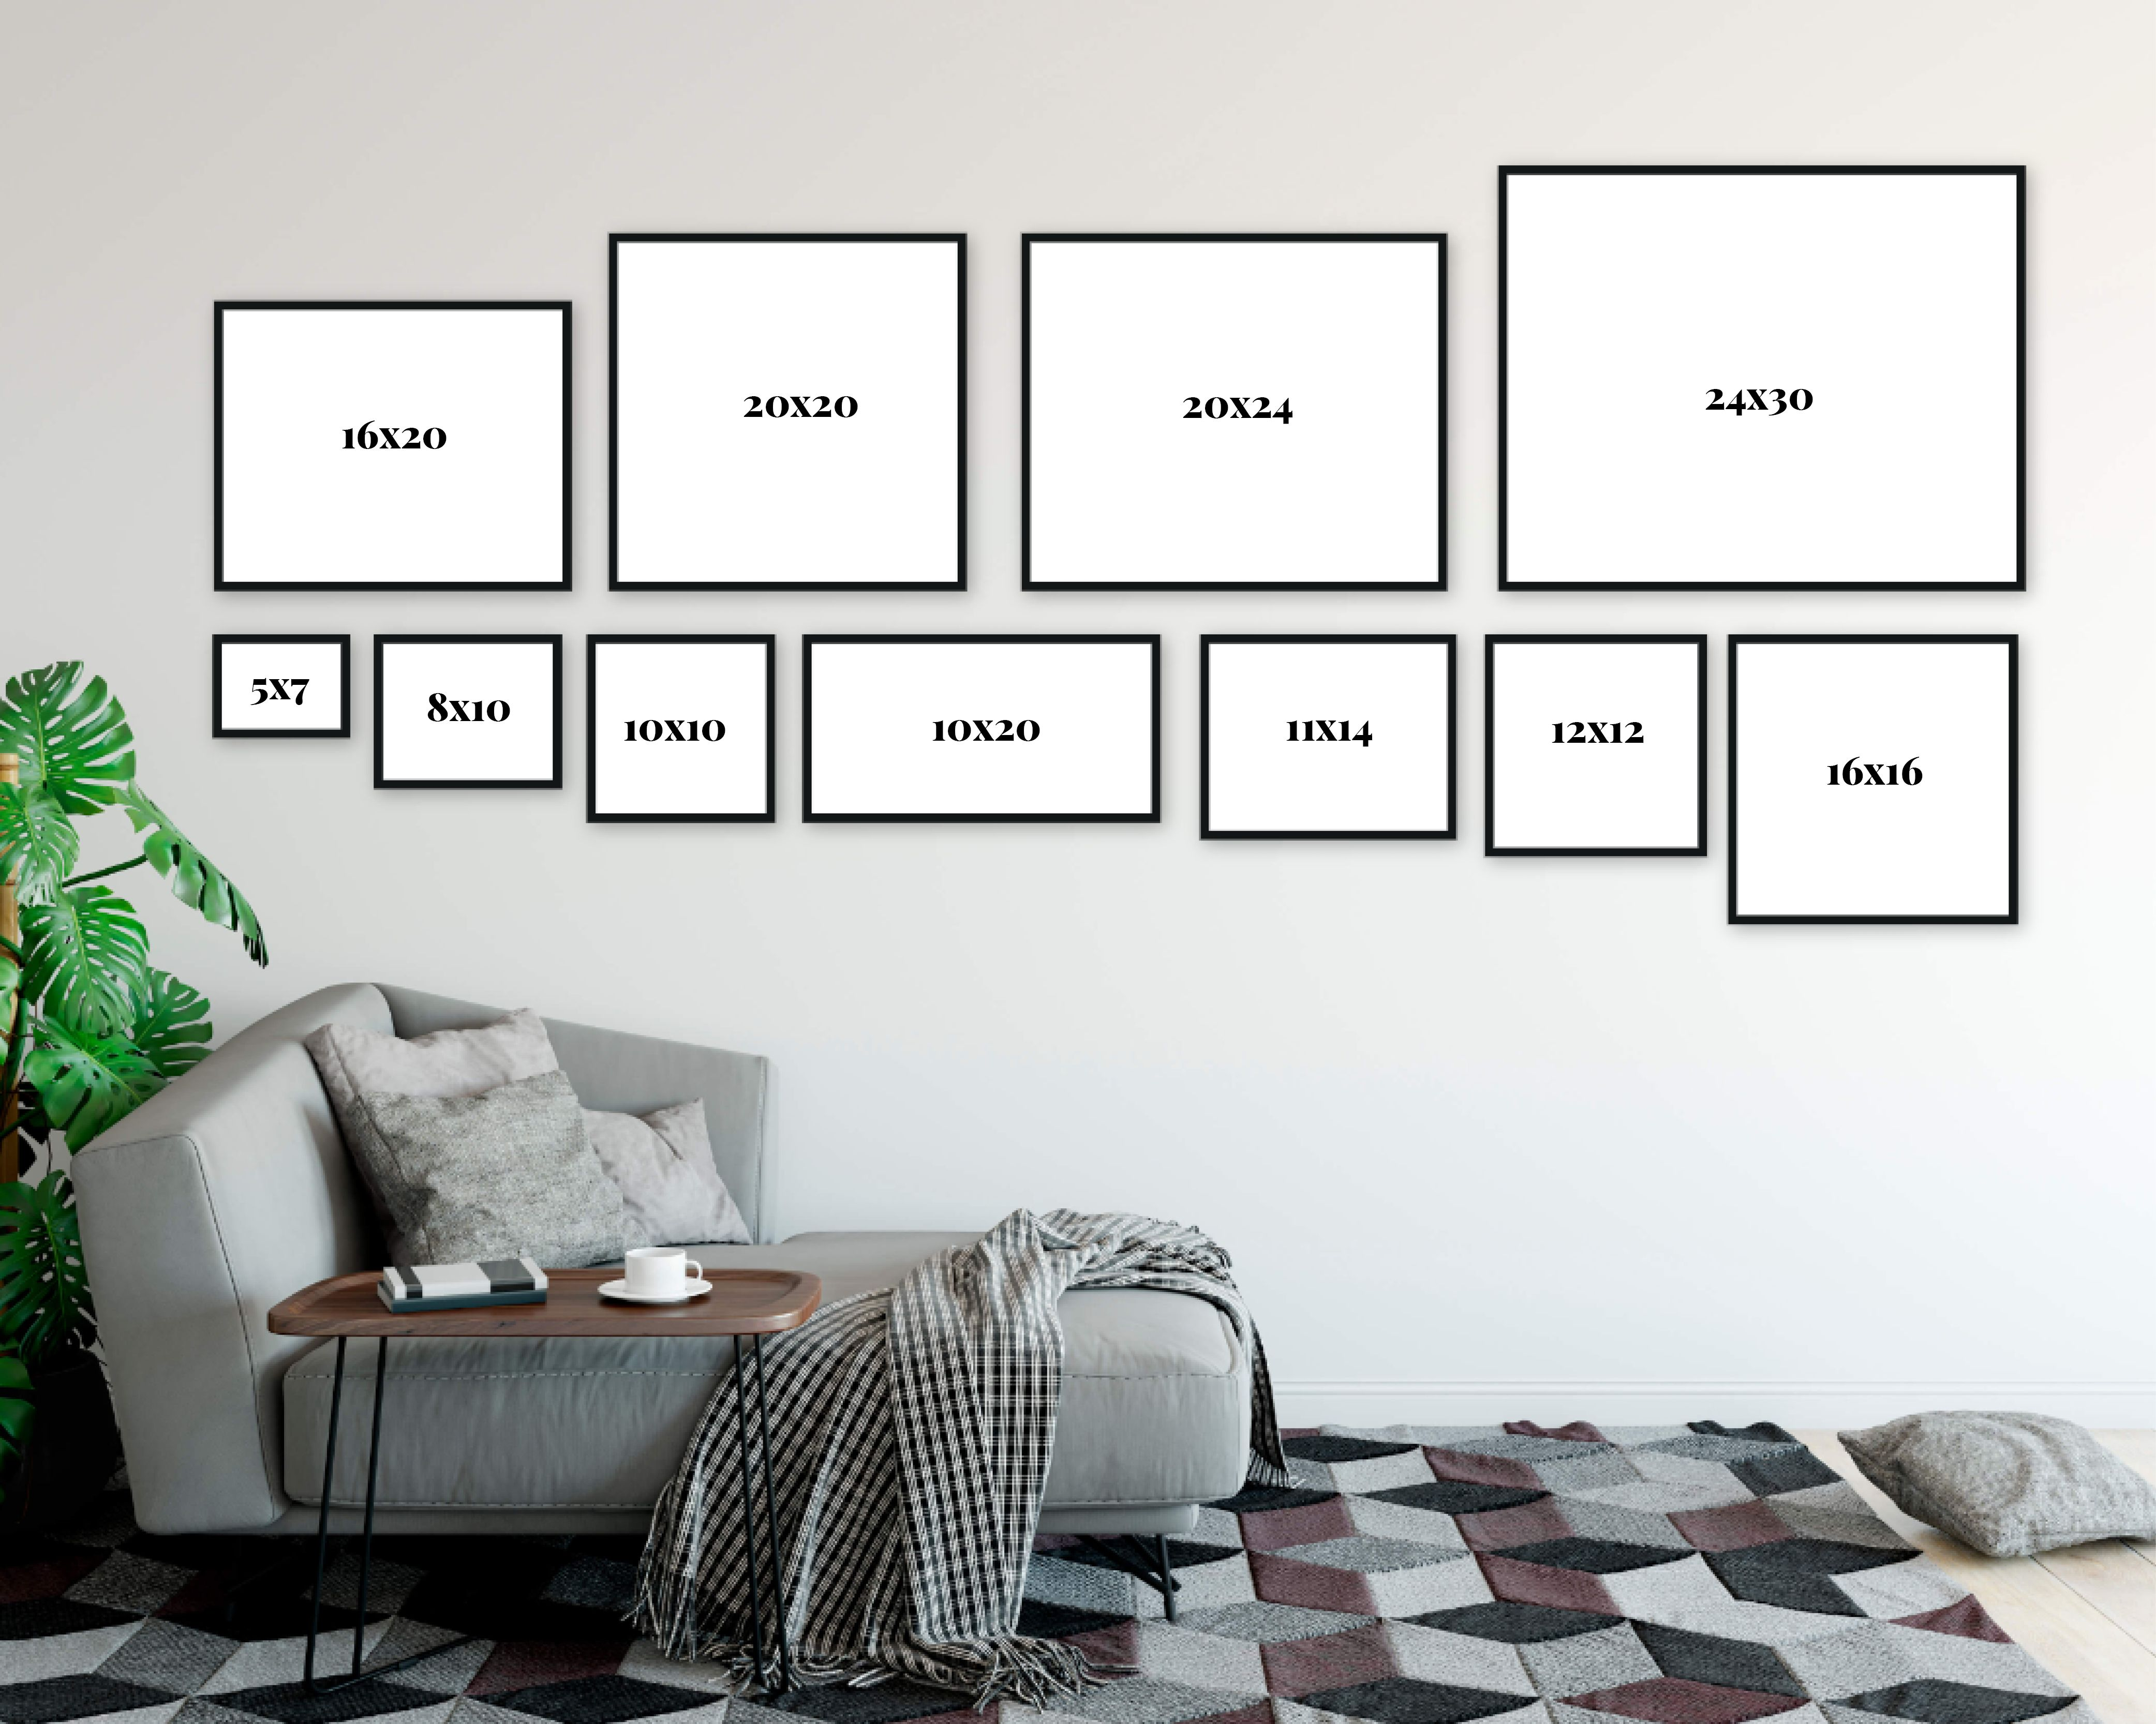 Resources Wall Art Size Comparison Reference Free Download Erin Clayton In 2020 Gallery Wall Inspiration Wall Gallery Inspiration Wall